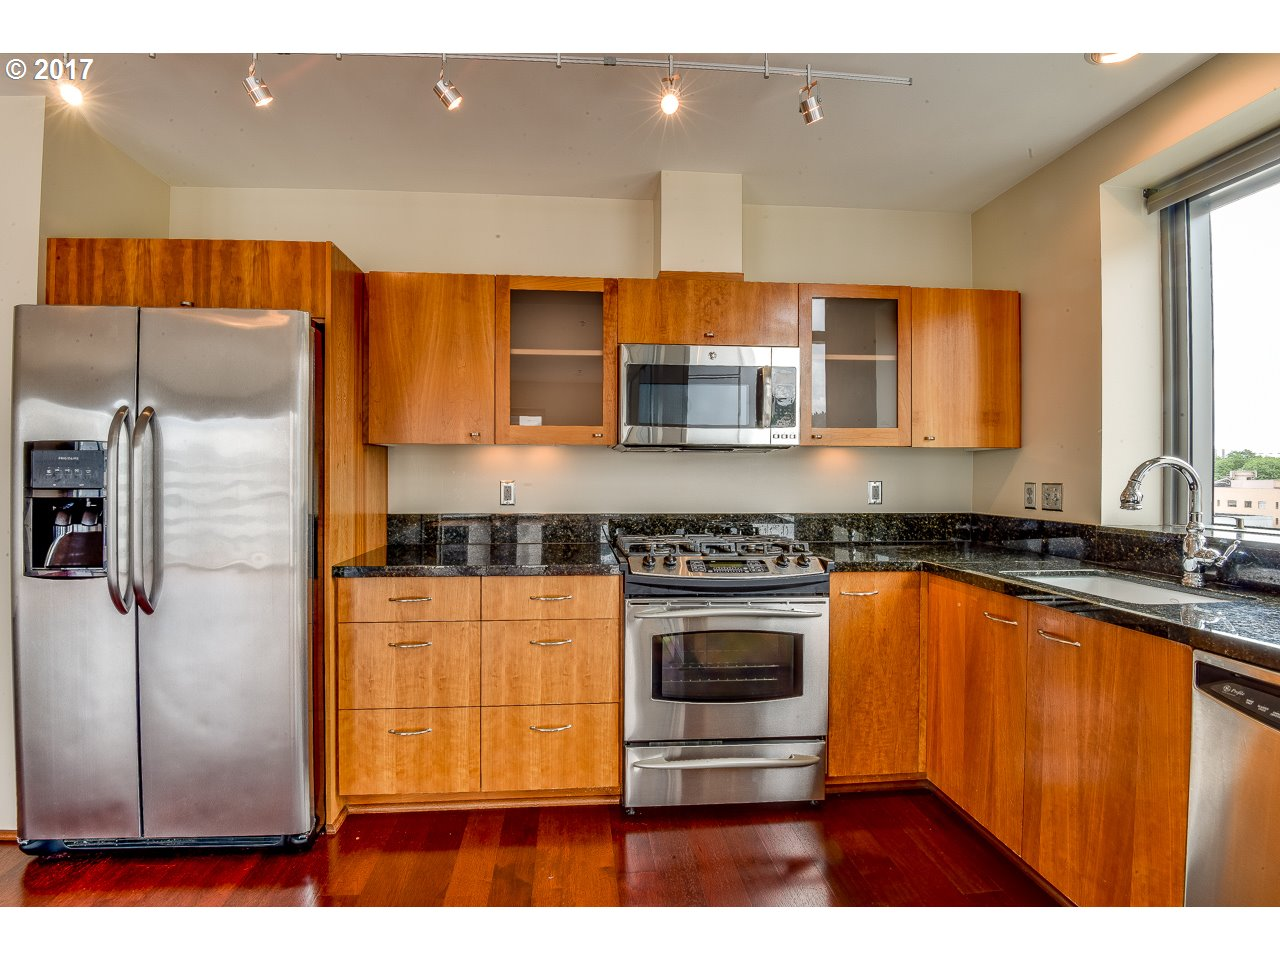 1221 SW 10TH AVE 806 Portland, OR 97205 - MLS #: 17486103